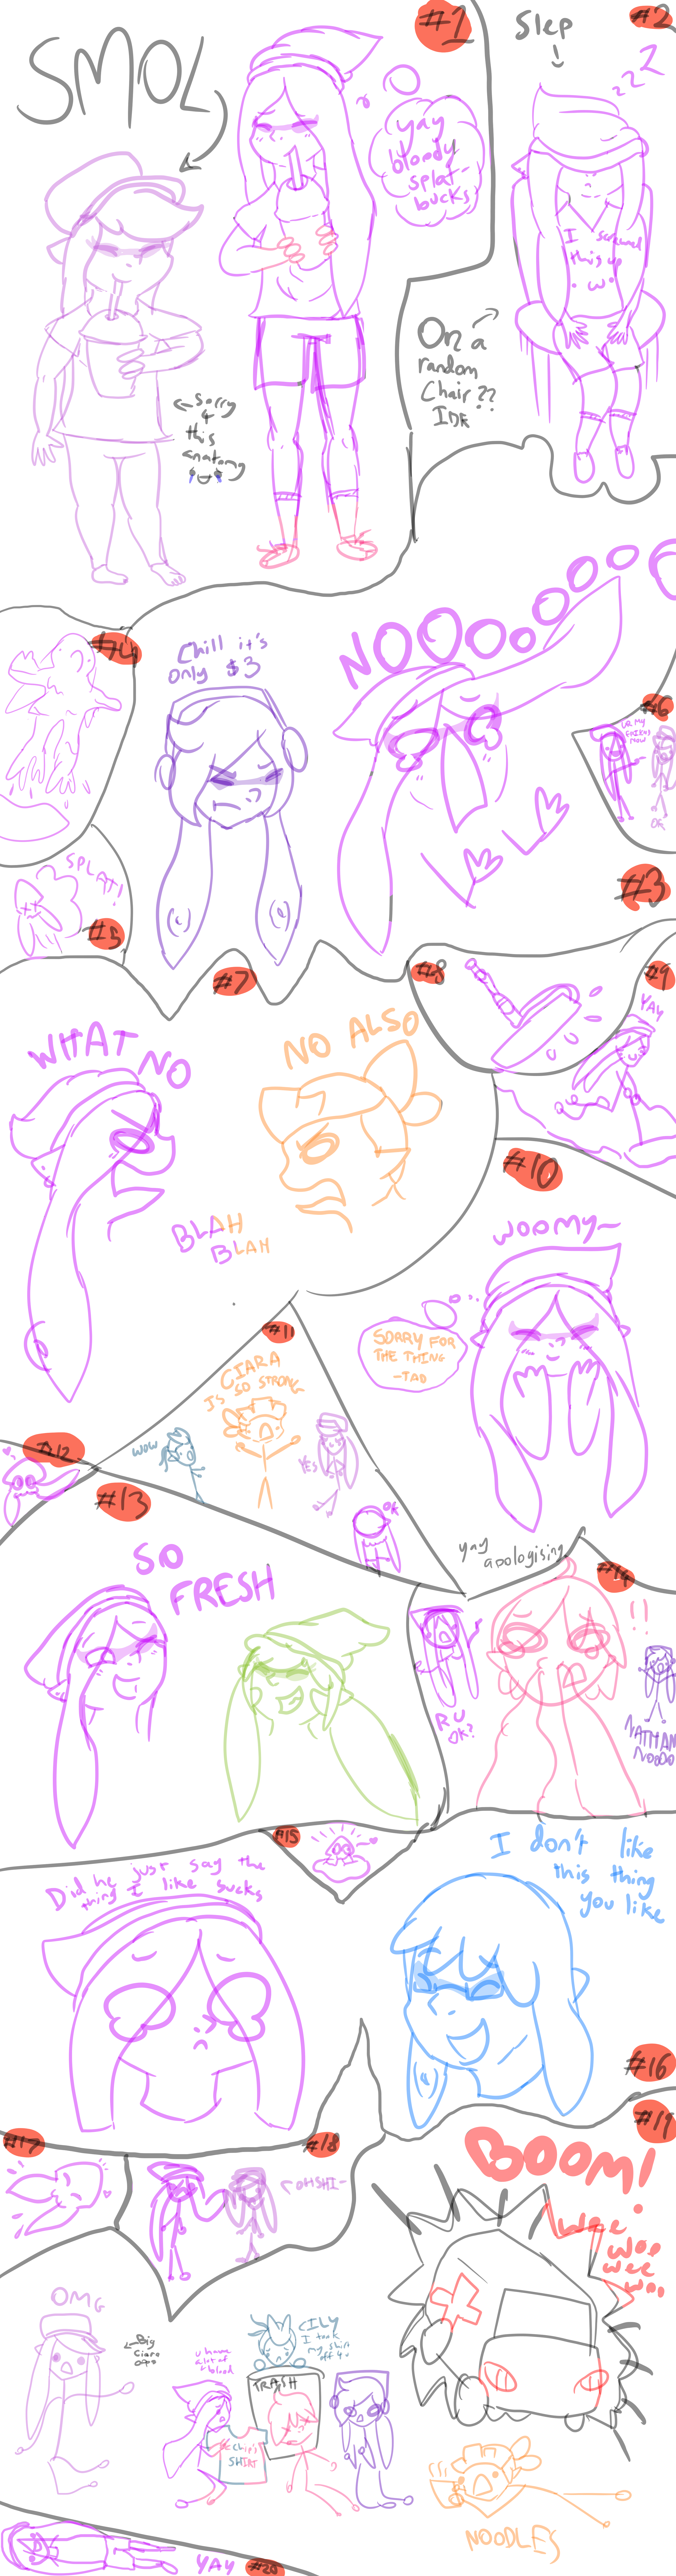 sQUIDKID SKETCH THINGS by ThatCreativeCat